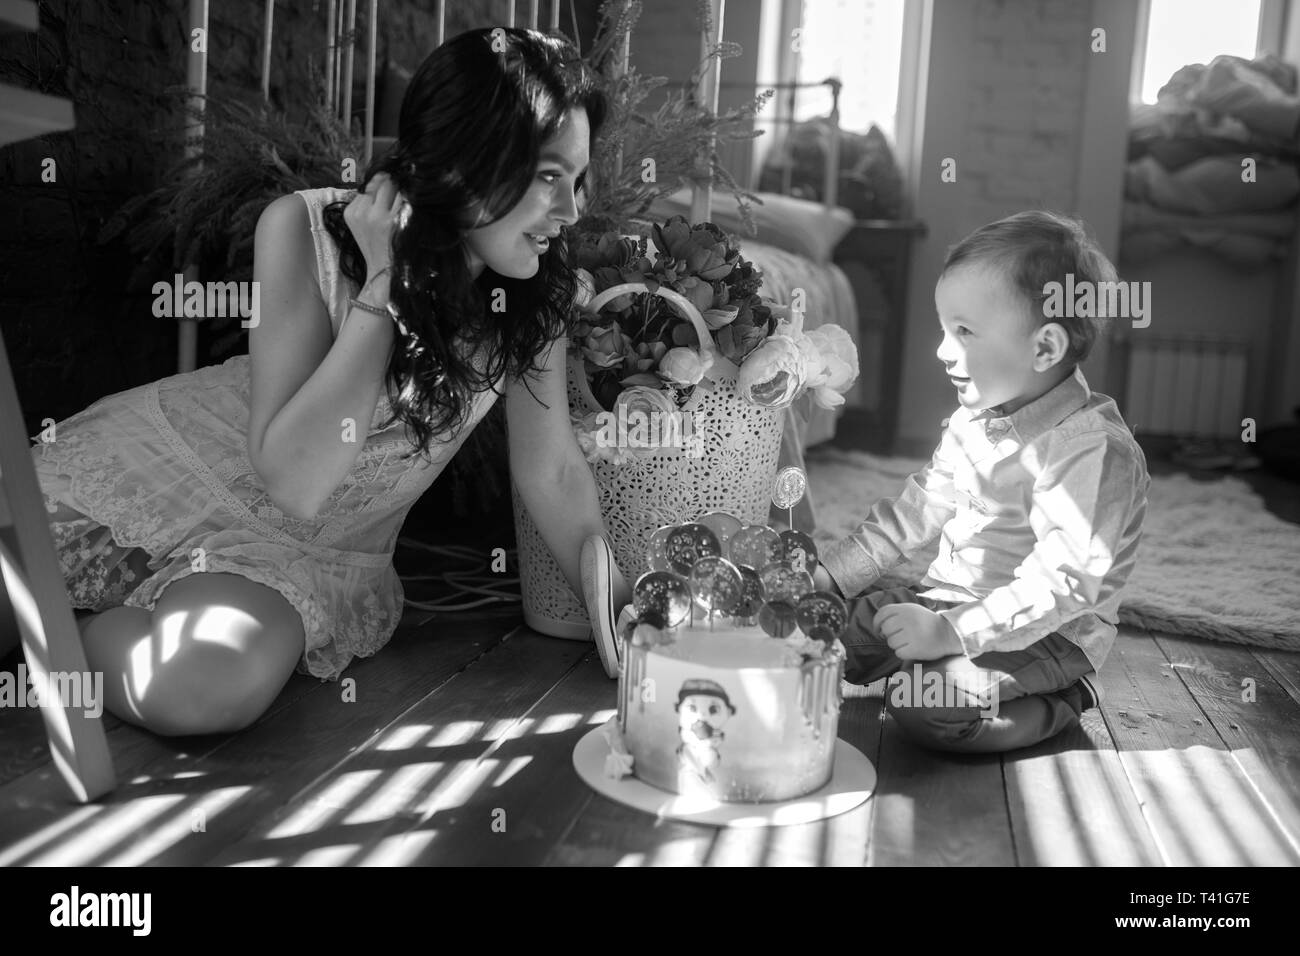 Toddler boy sits on floor with his mother near birthday cake on background of flowers. Black and white image. - Stock Image